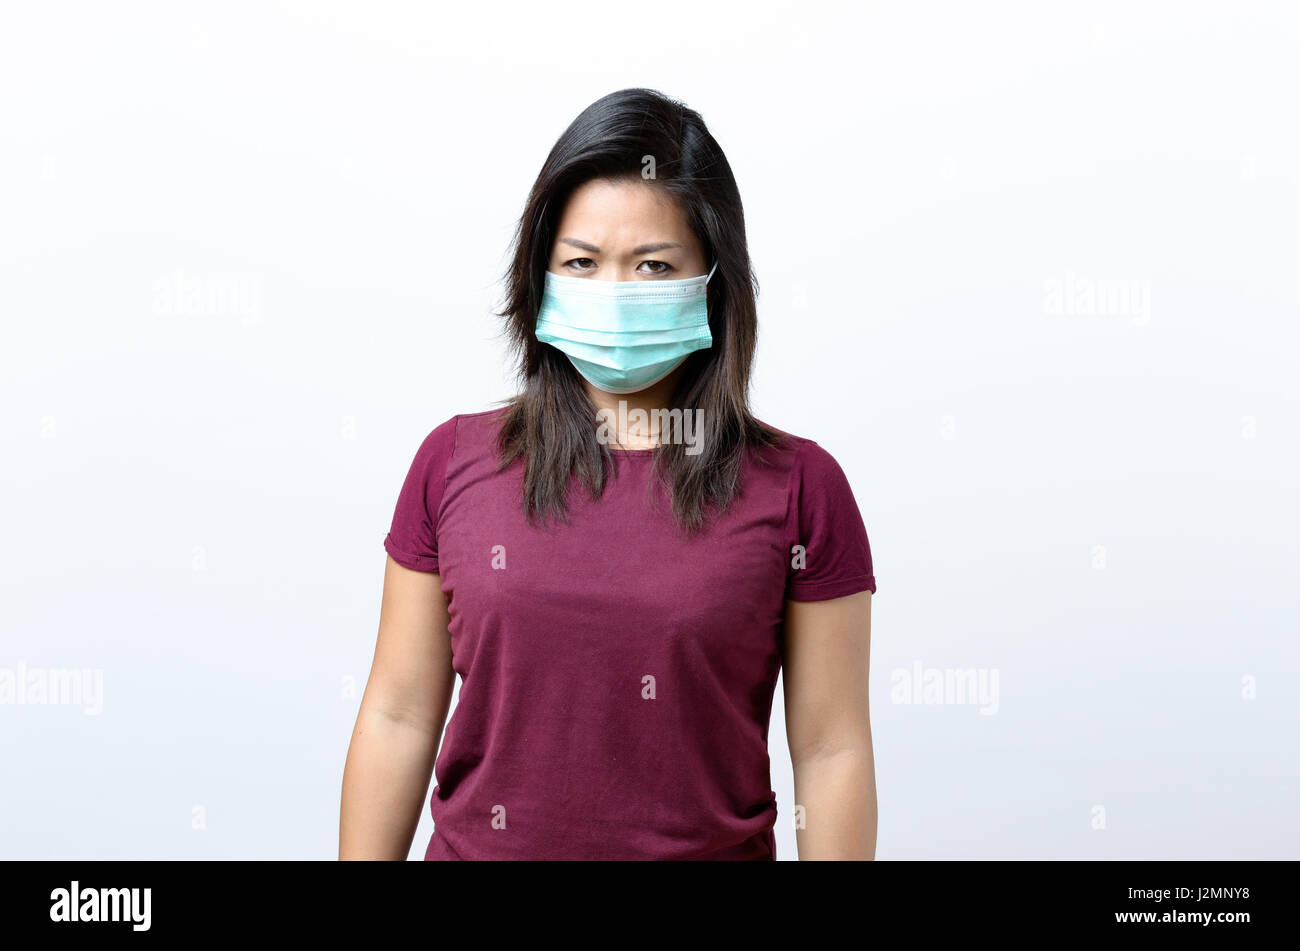 disposable air pollution face mask